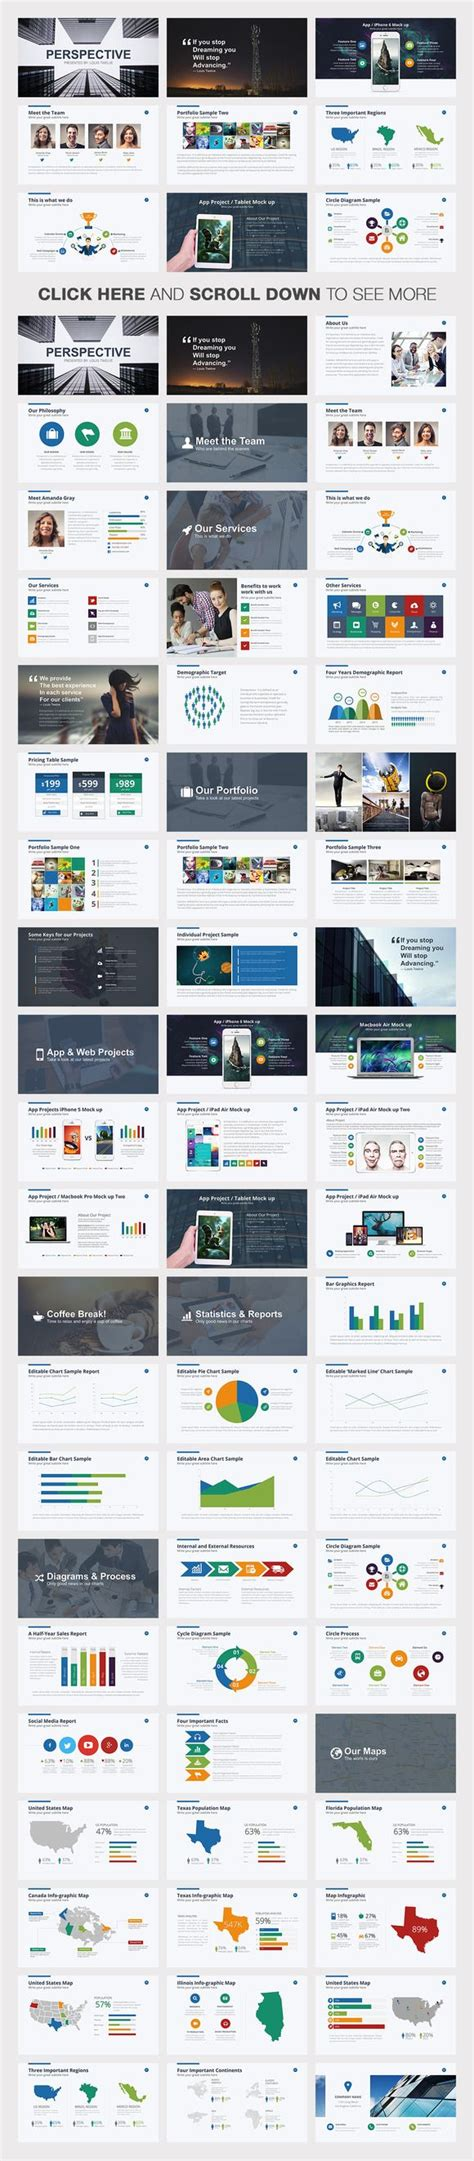 40 Best Creative And Good Looking Powerpoint Slides Images Best Looking Powerpoint